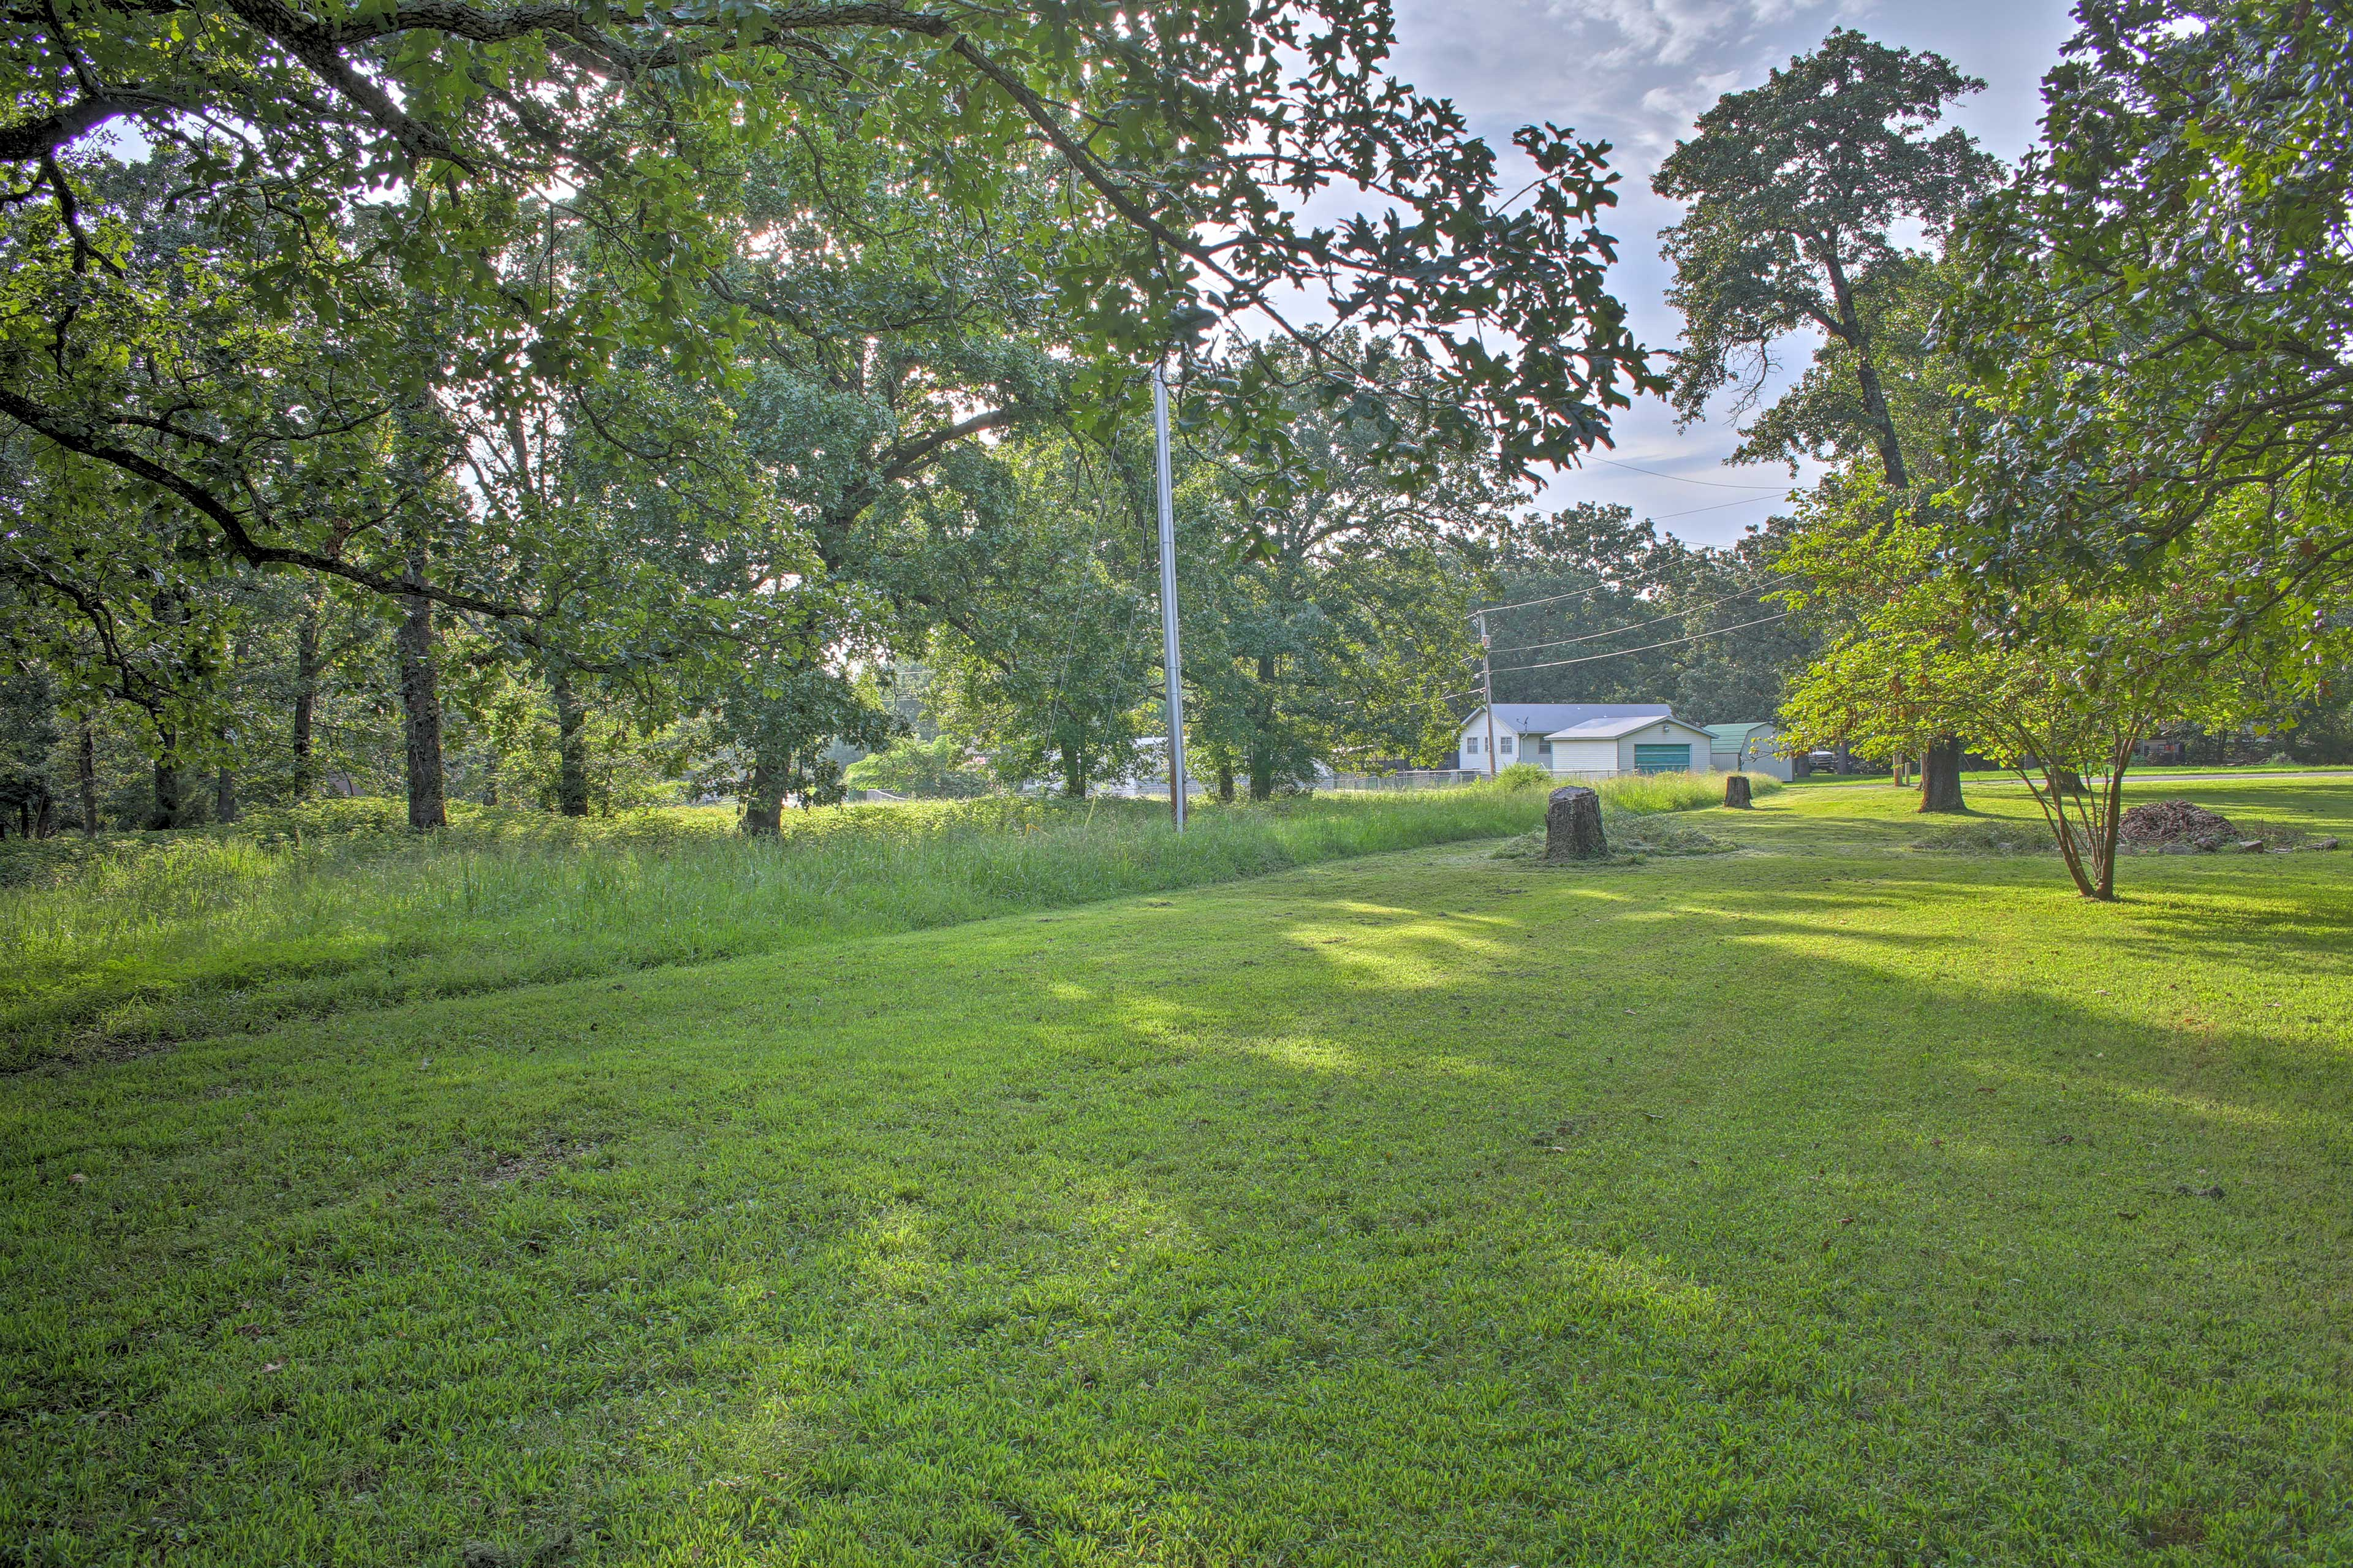 The property is filled with verdant trees and plants.